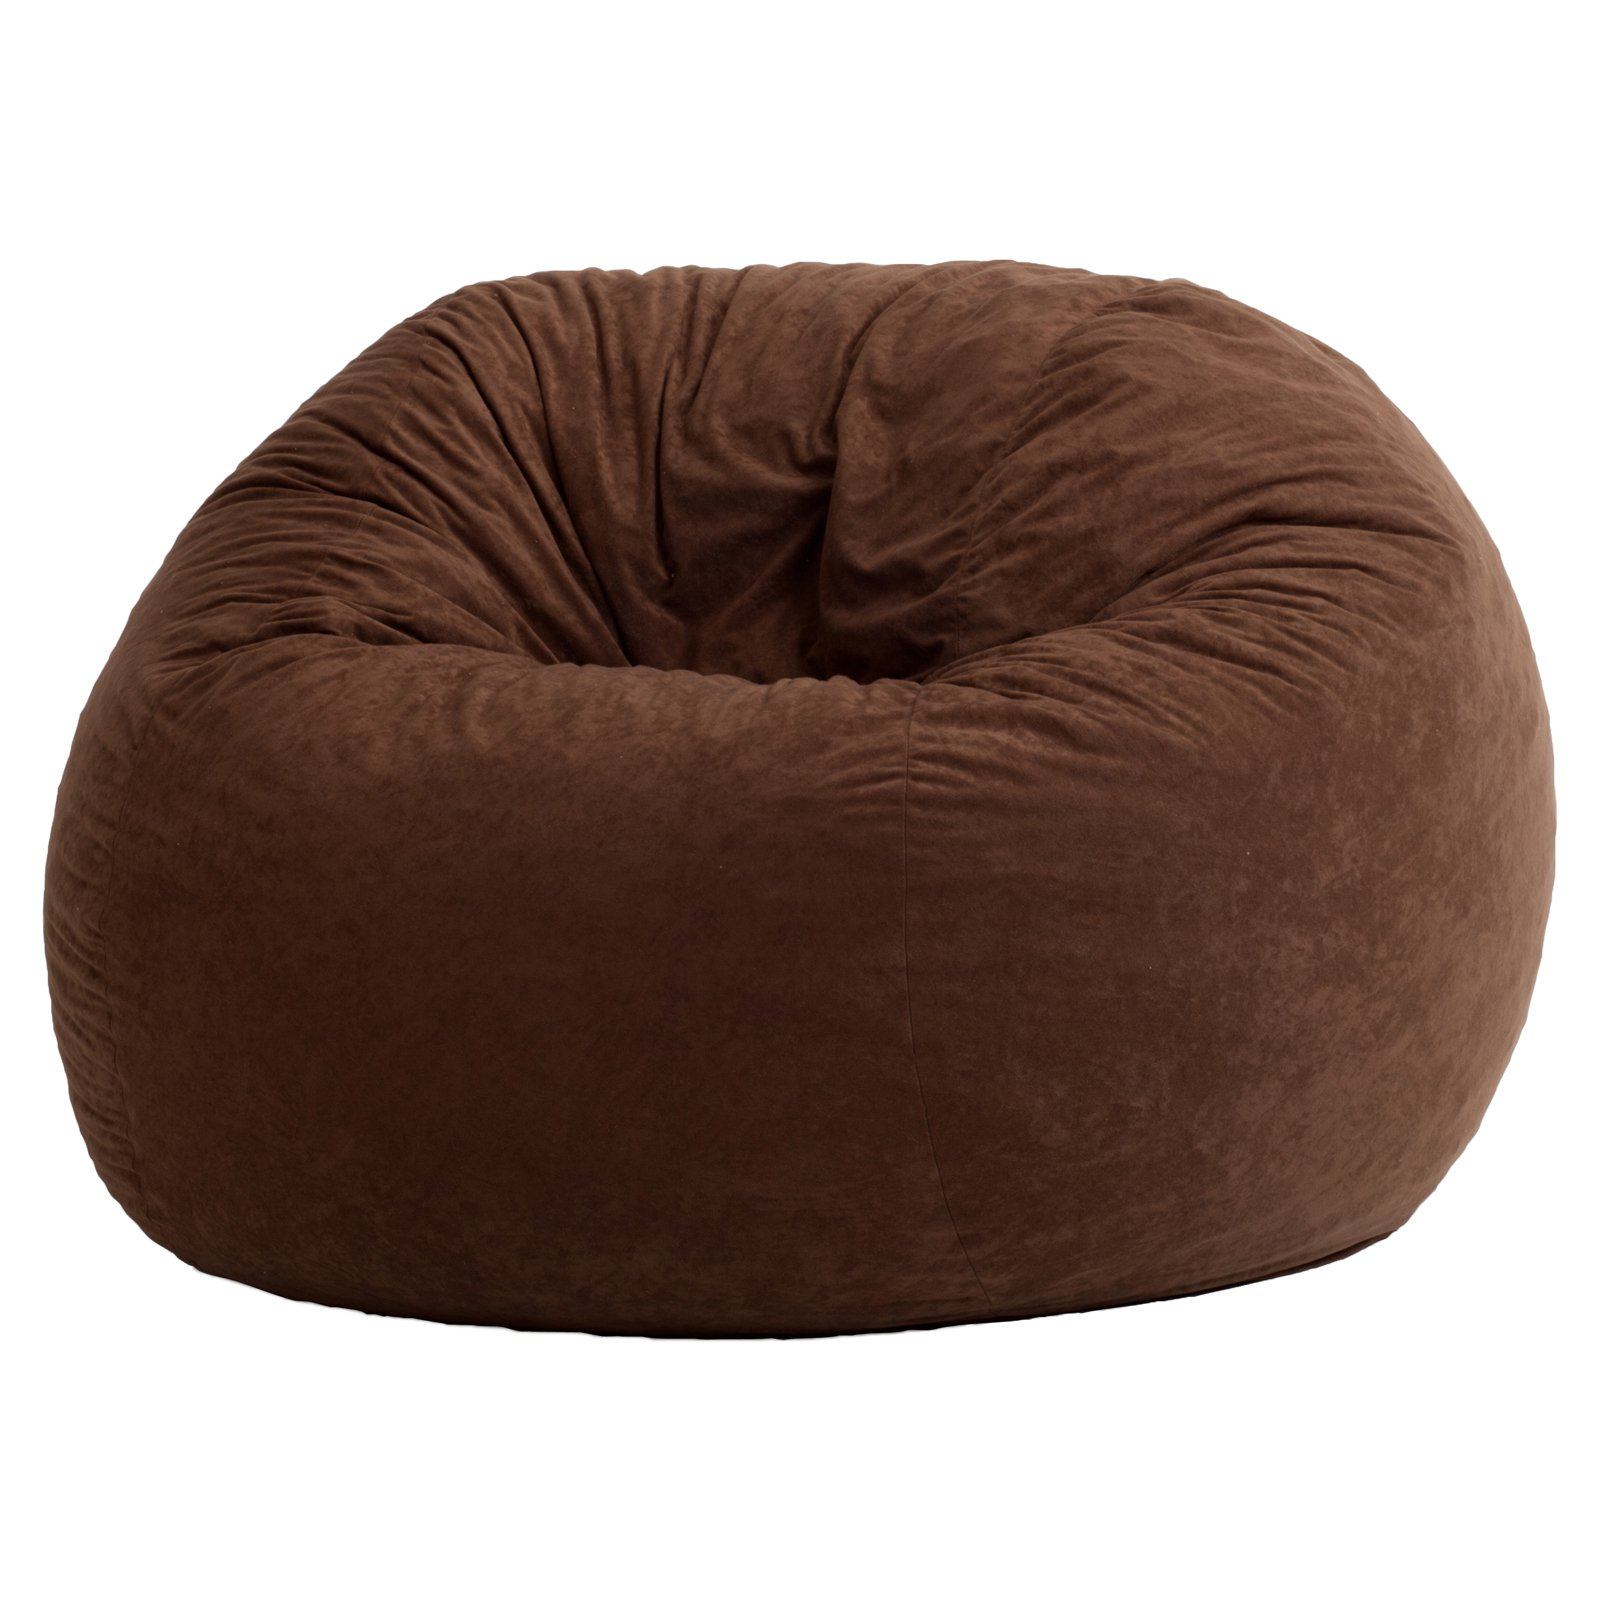 big bean bag chairs original big joe bean bag chair big joe roma bean bag chair big joe big. Black Bedroom Furniture Sets. Home Design Ideas